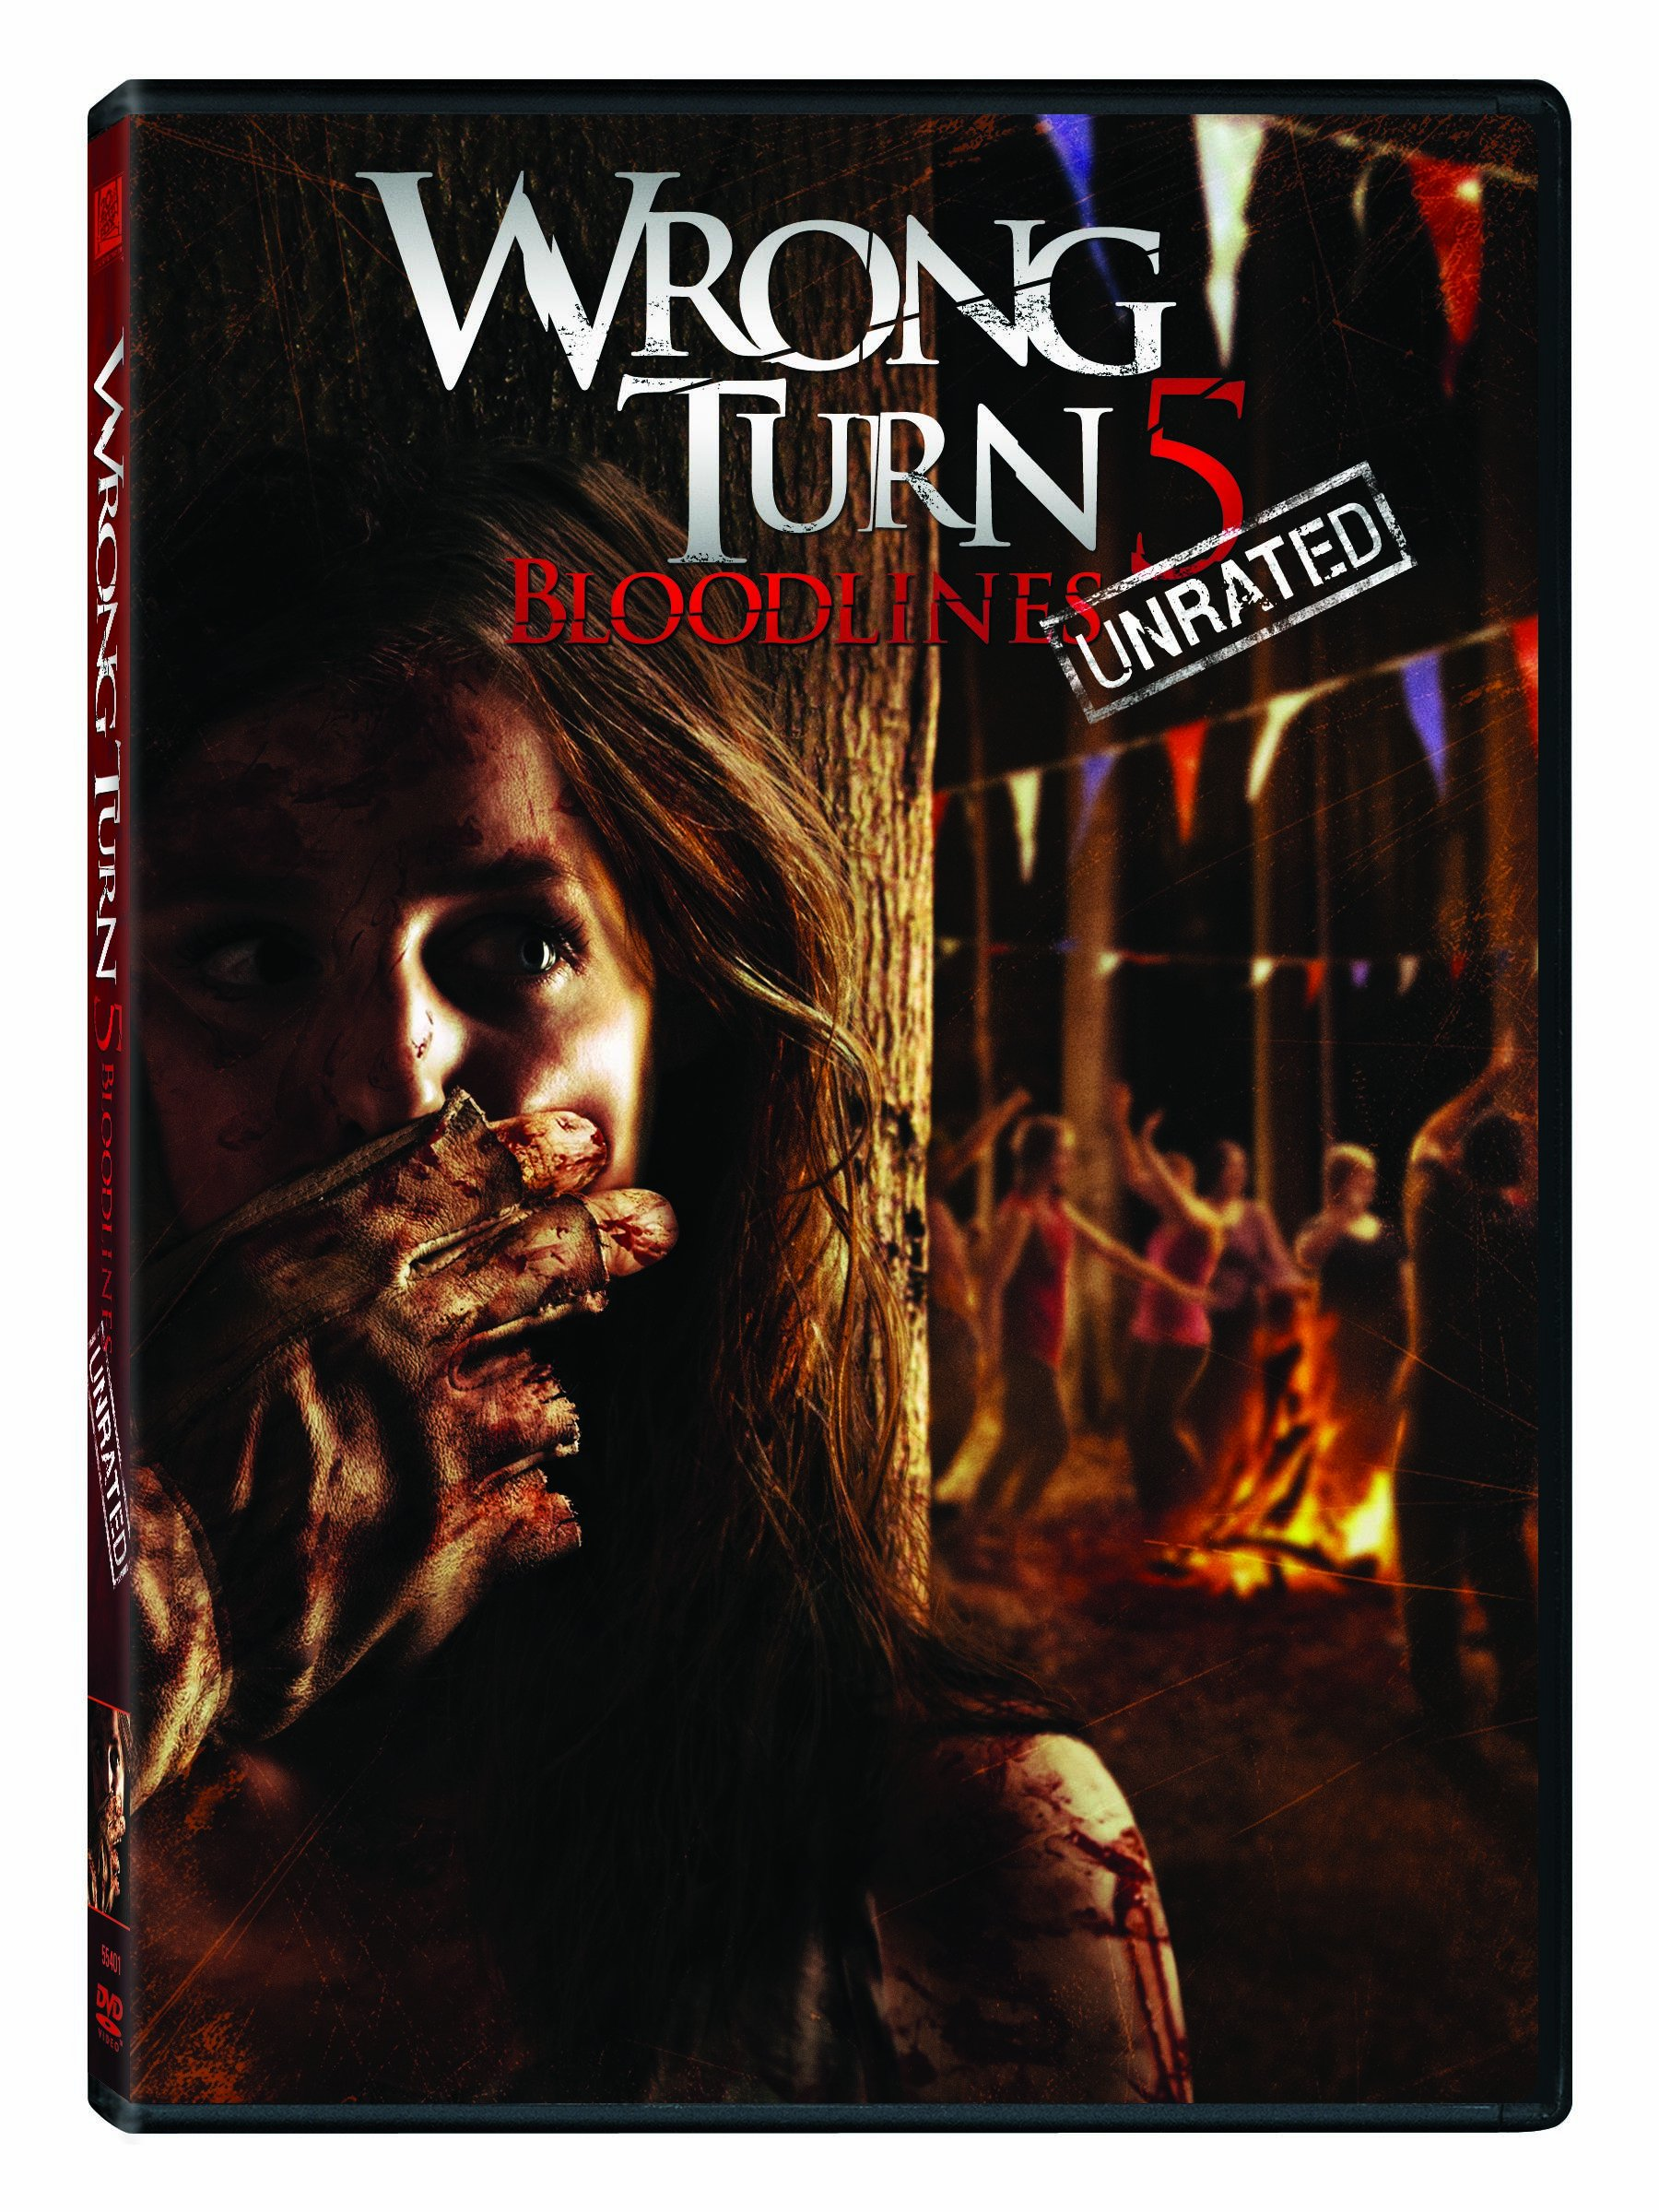 DVD : Wrong Turn 5: Bloodlines (AC-3, Dolby, Widescreen, )